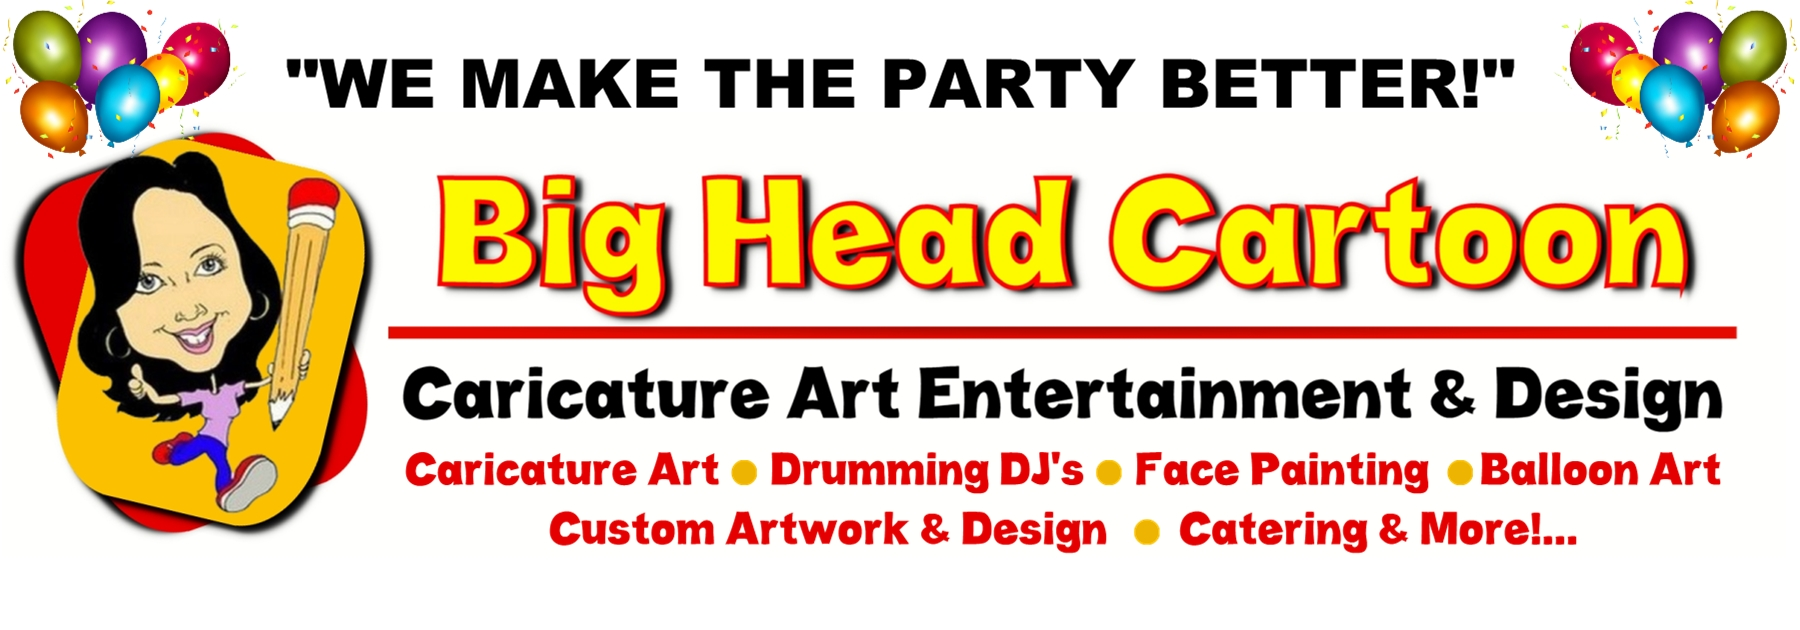 Big Head Cartoon Caricature Art & Entertainment